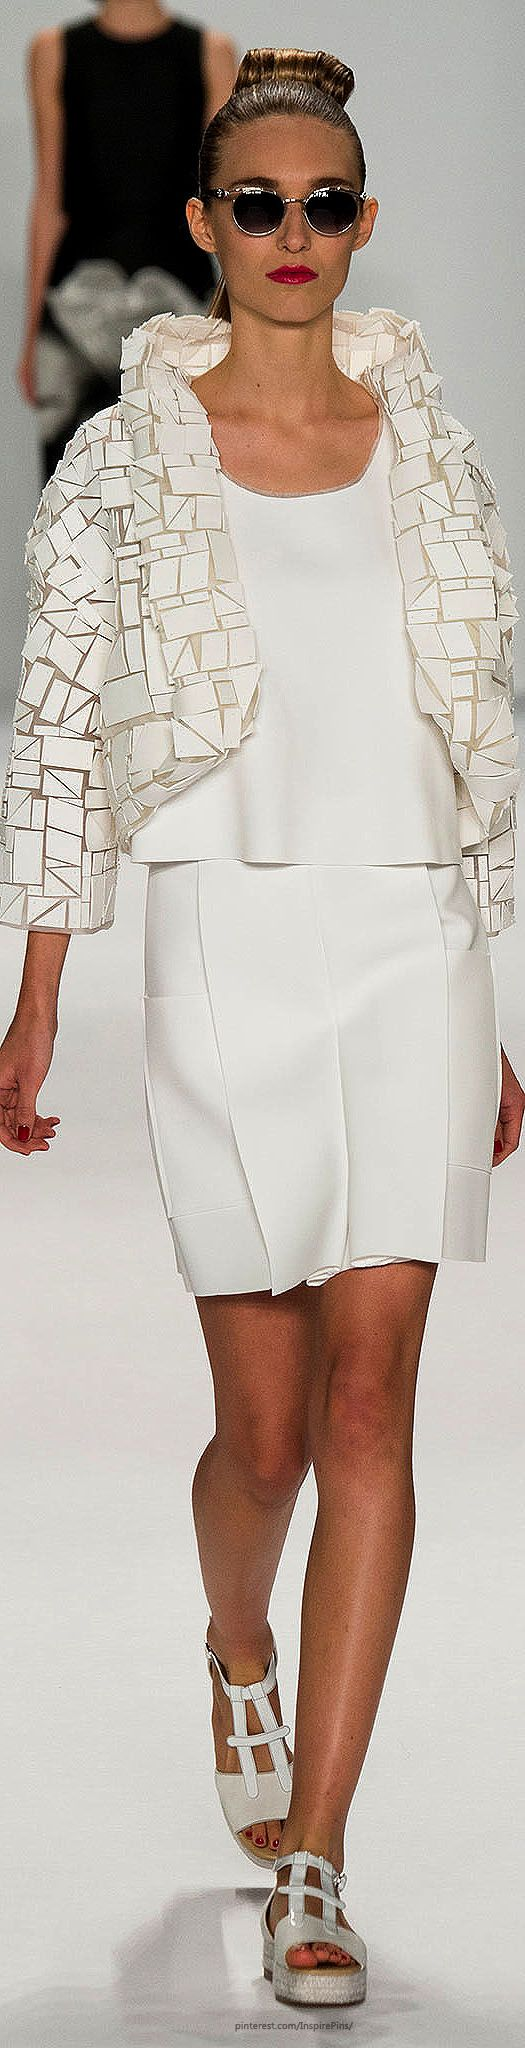 Carolina Herrera Spring 2015 | The House of Beccaria~